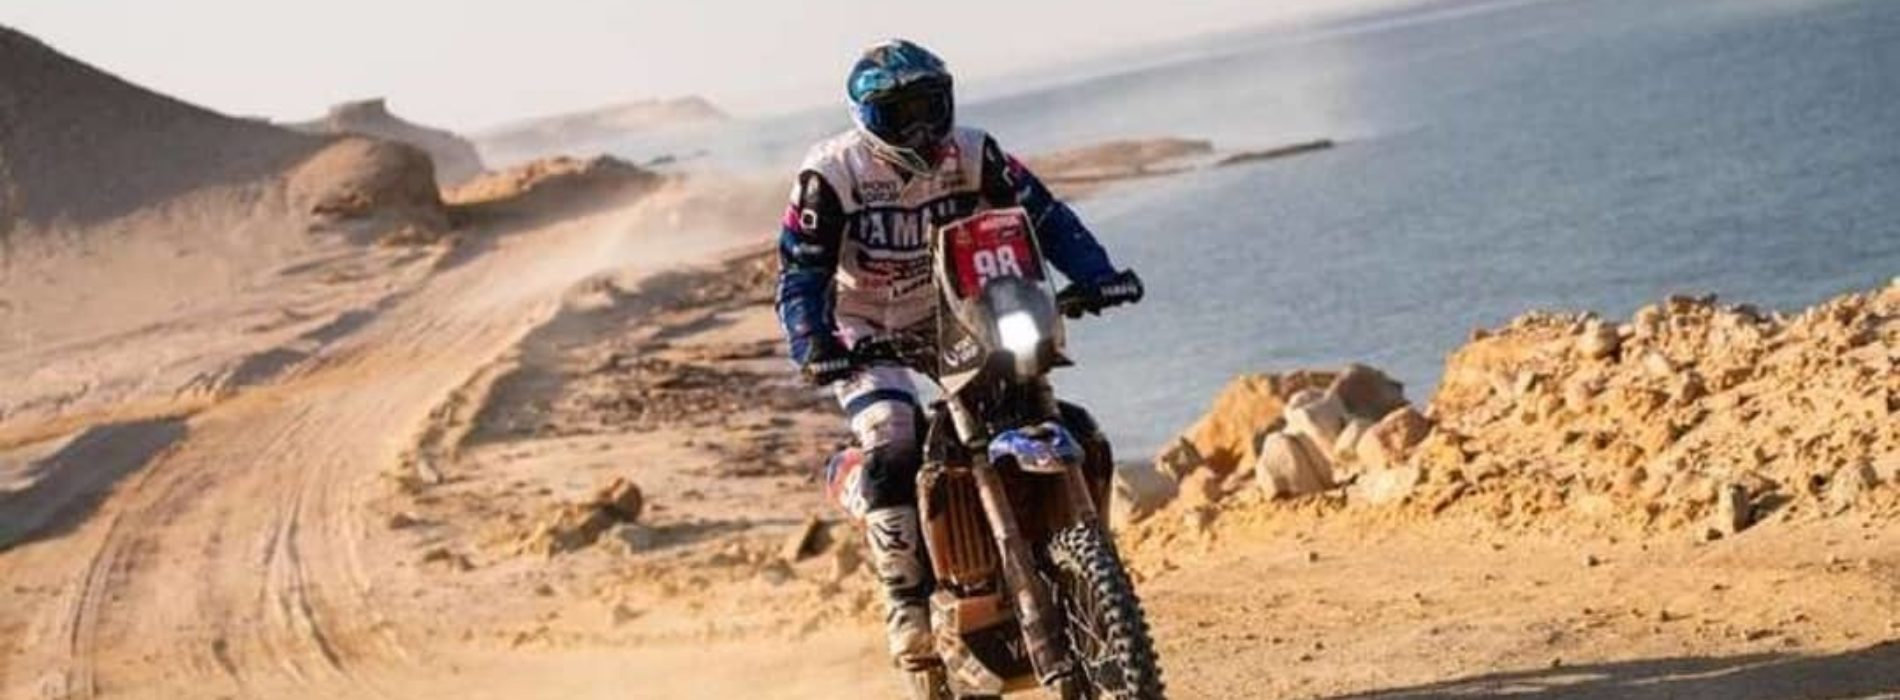 Women racing Dakar Rally- tough, challenging- 2 Stages to go!